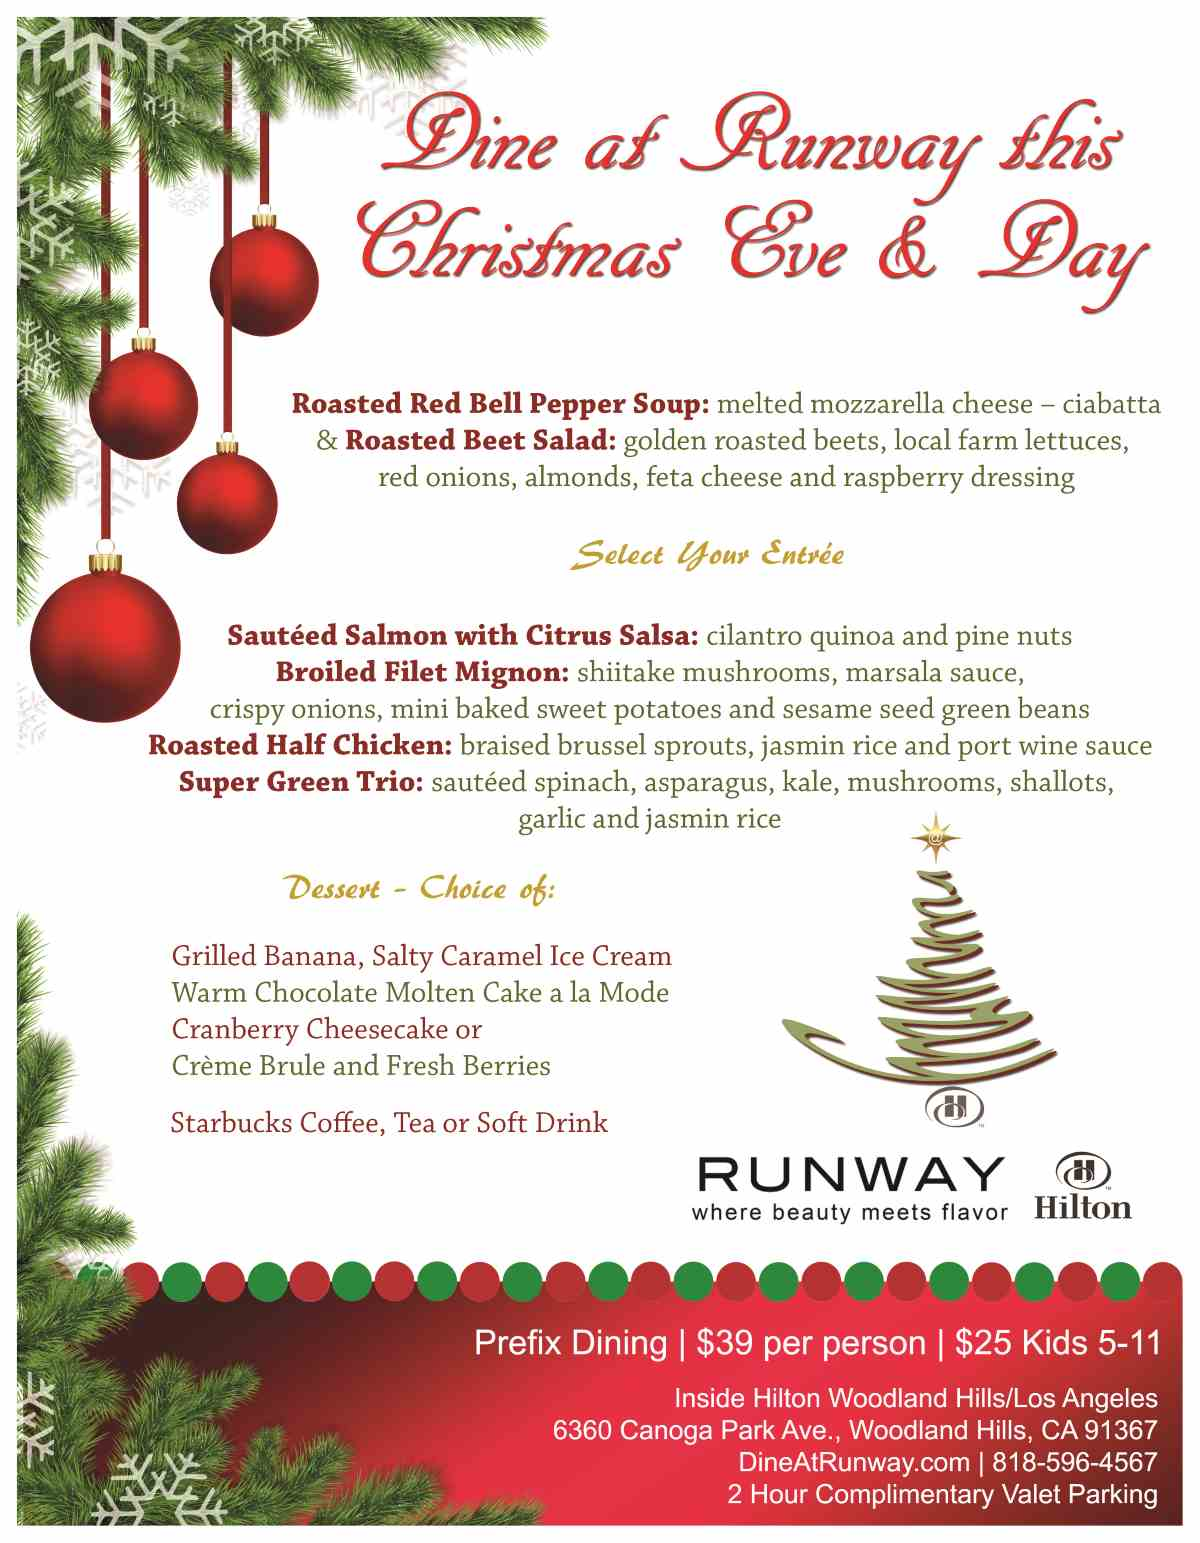 Christmas & Christmas Eve Dinner - The Runway Restaurant and Bar